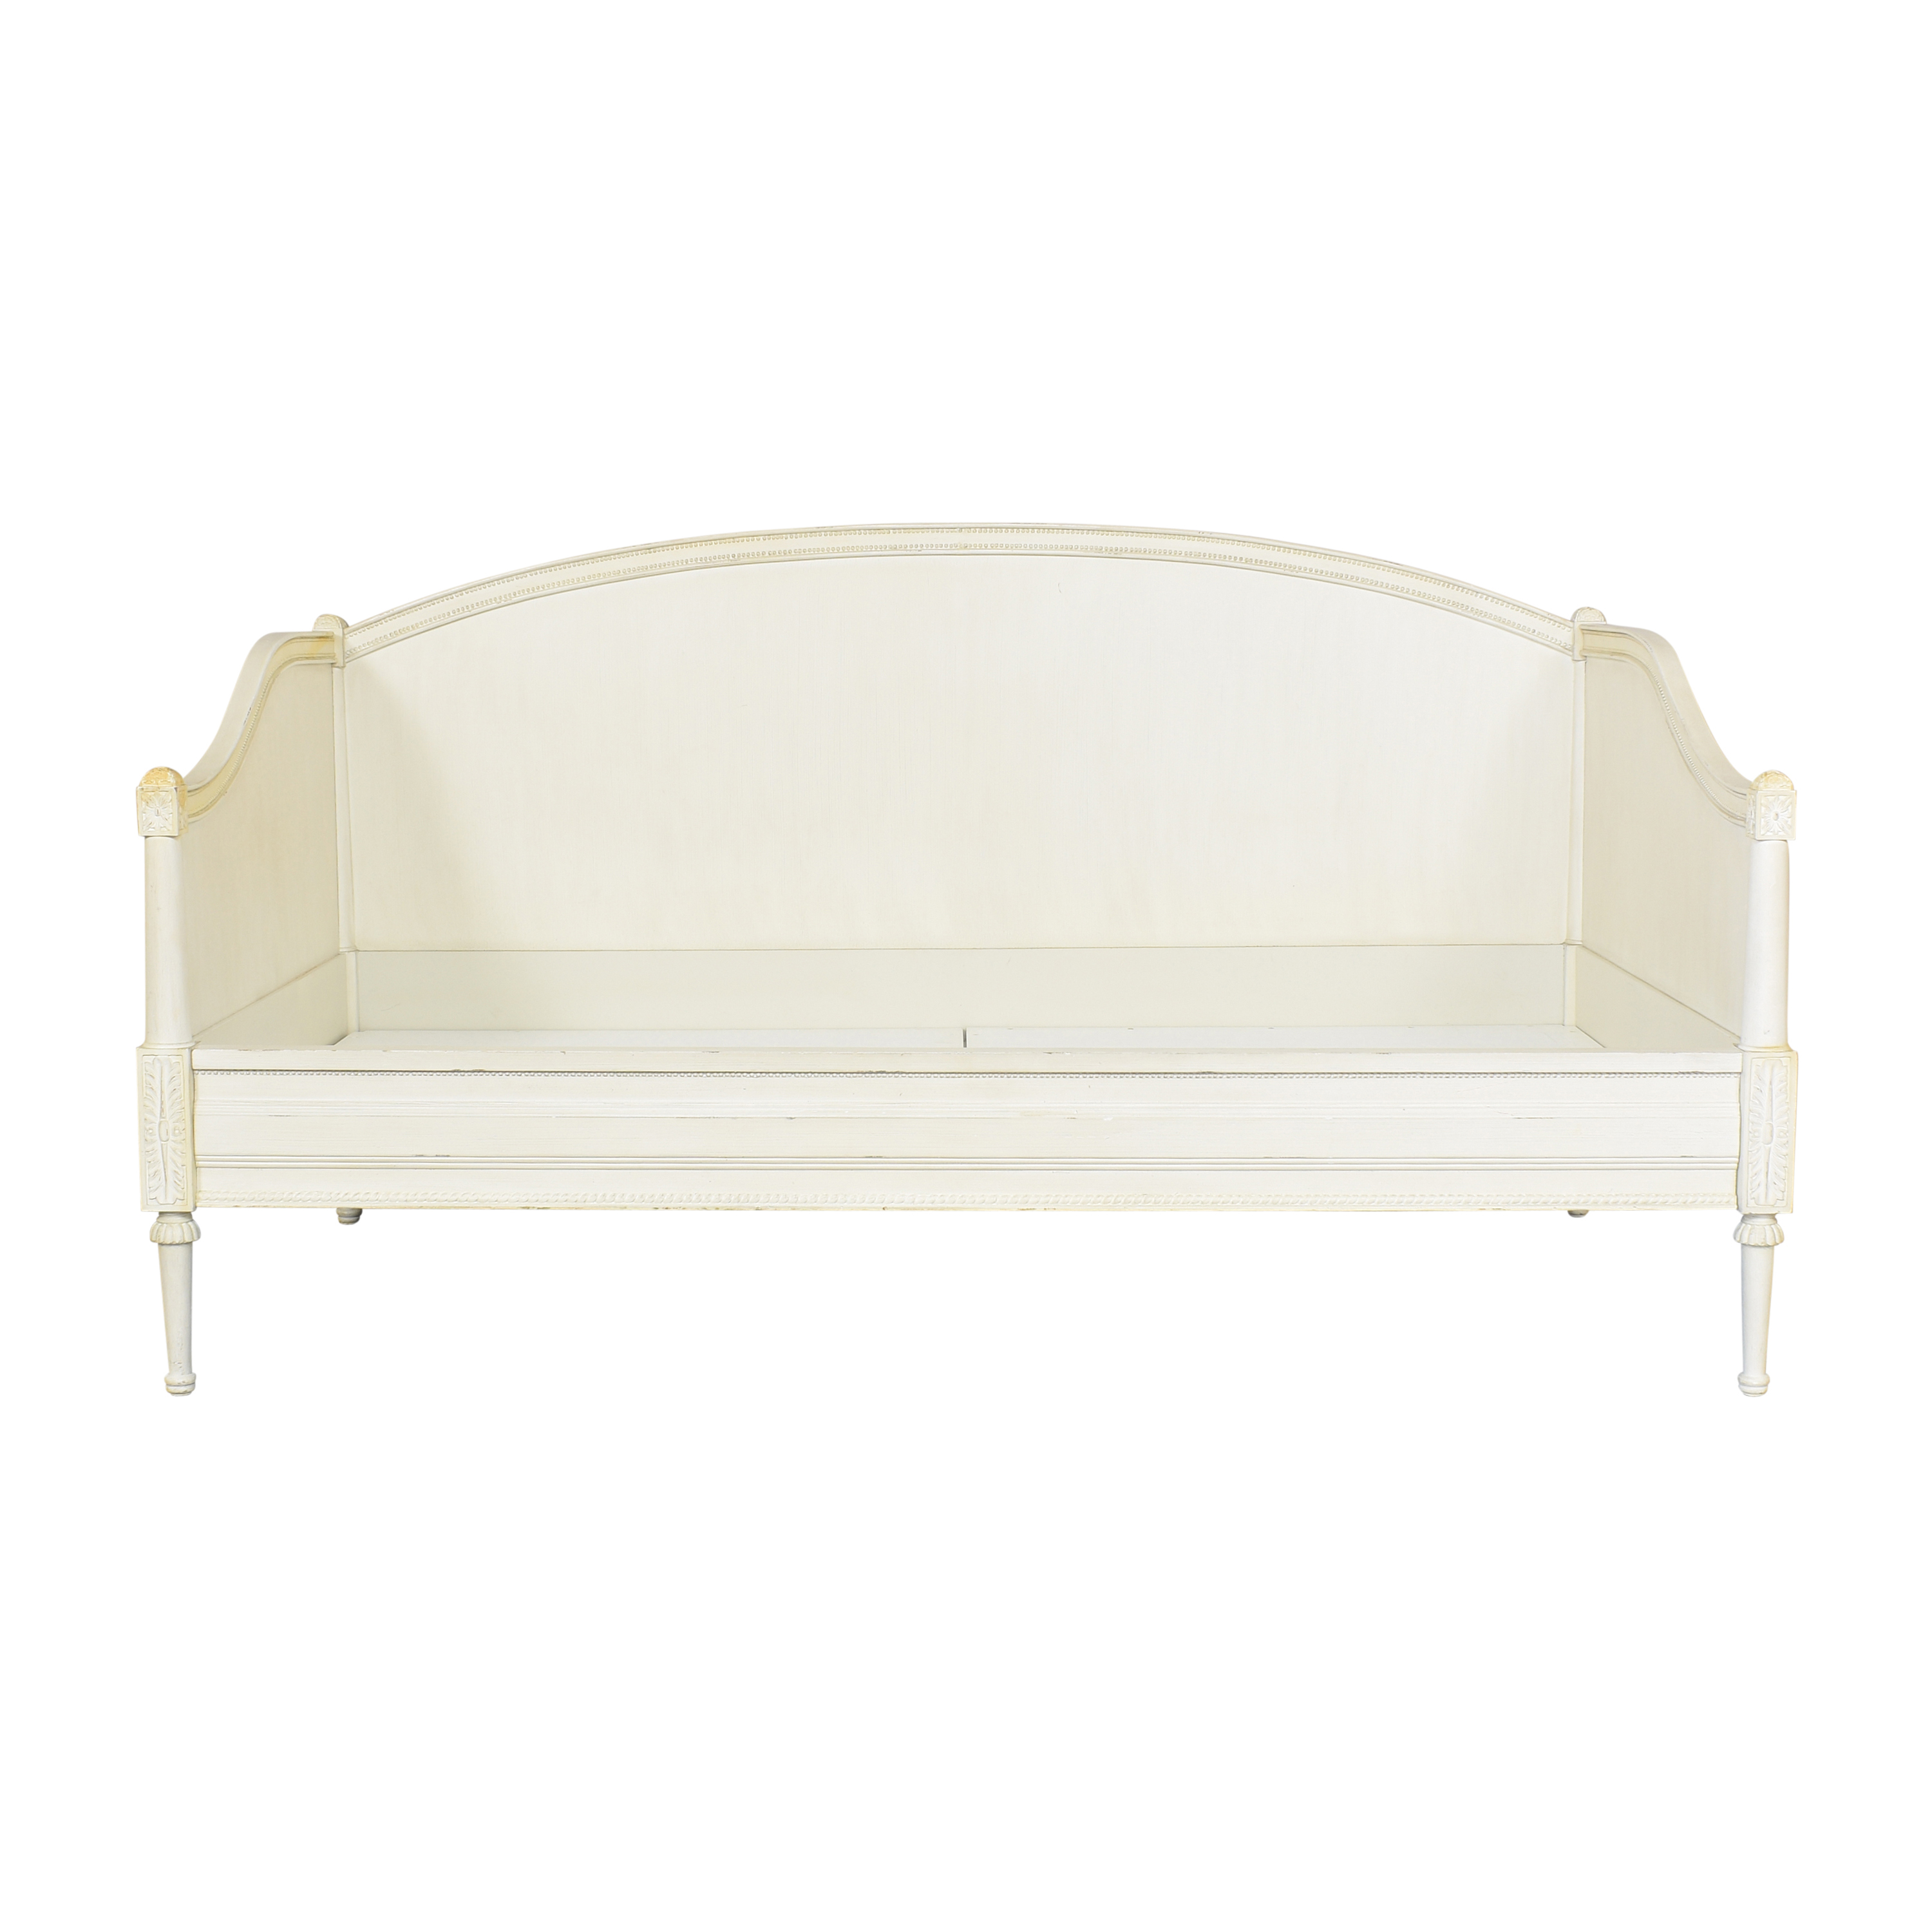 shop RH Baby & Child Bellina Arched Panel Twin Daybed RH Baby & Child Beds